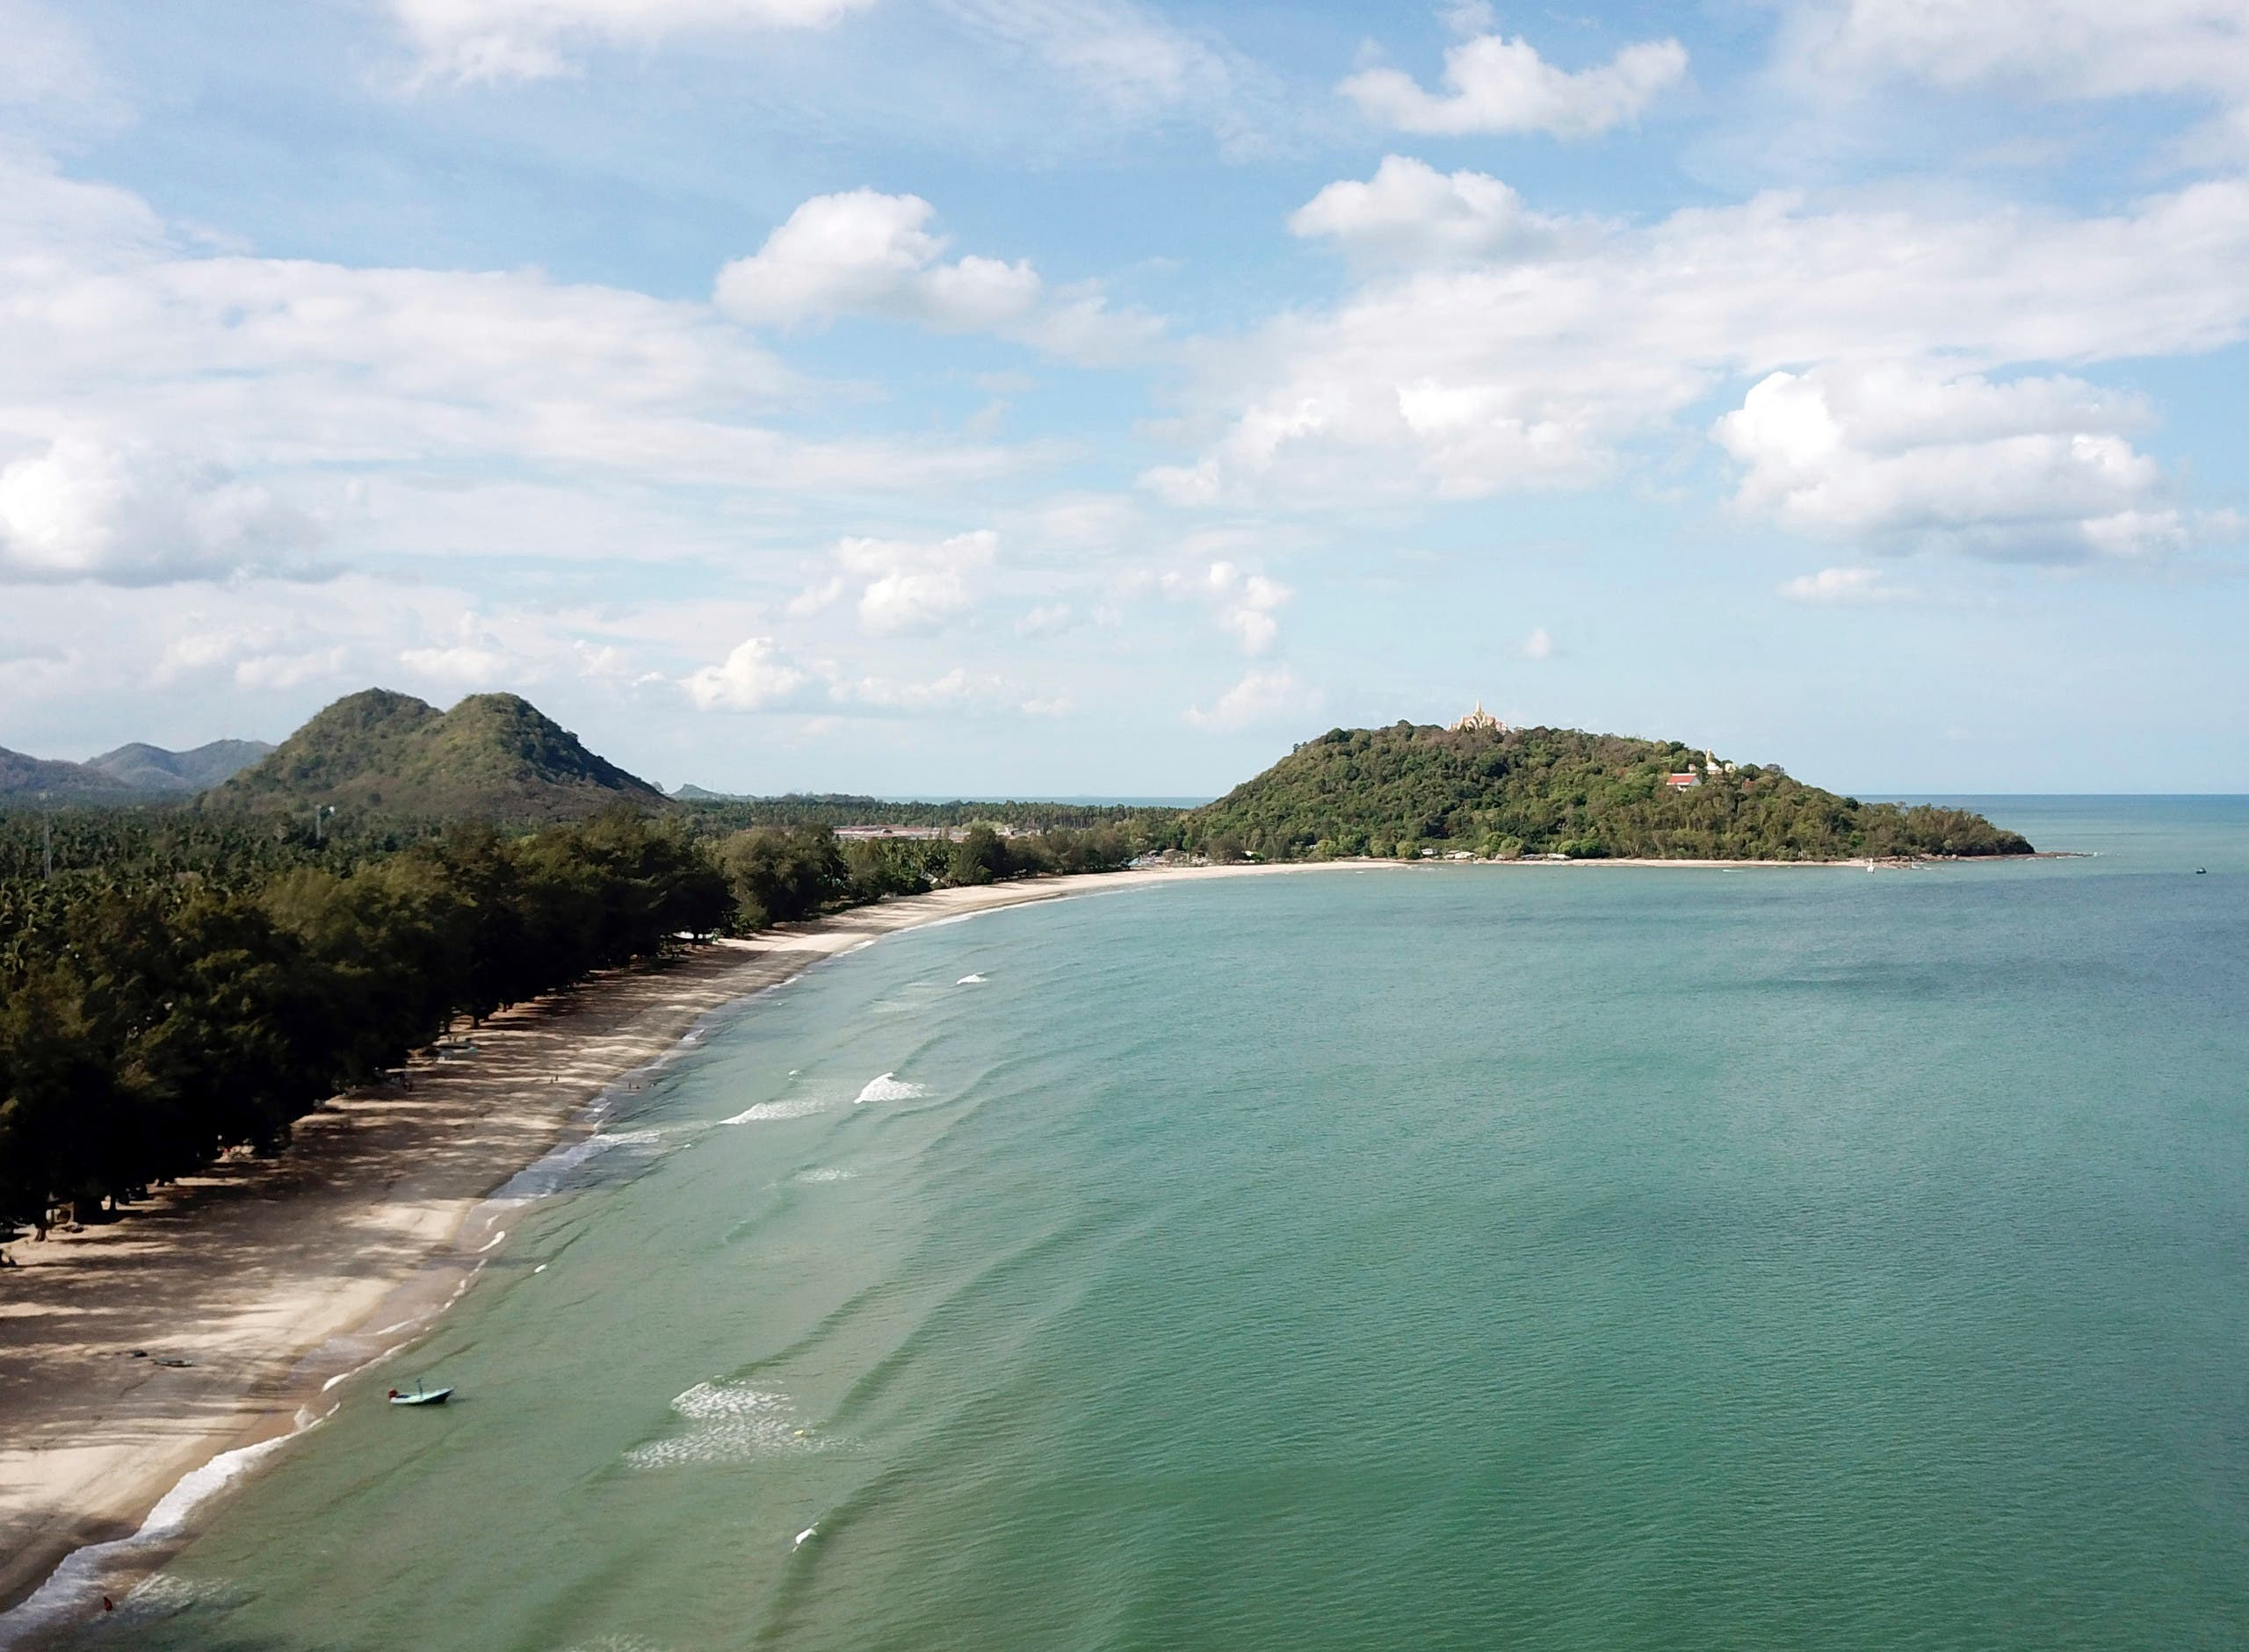 This June 15, 2019 photo shows Ban Krut beach in the Prachuap Khiri Khan province of Thailand. You won't find the party scene of Phuket or Pattaya in laid-back Ban Krut, but you will get one of the cleanest and quietest stretches of white sand within driving distance of the capital. (AP)